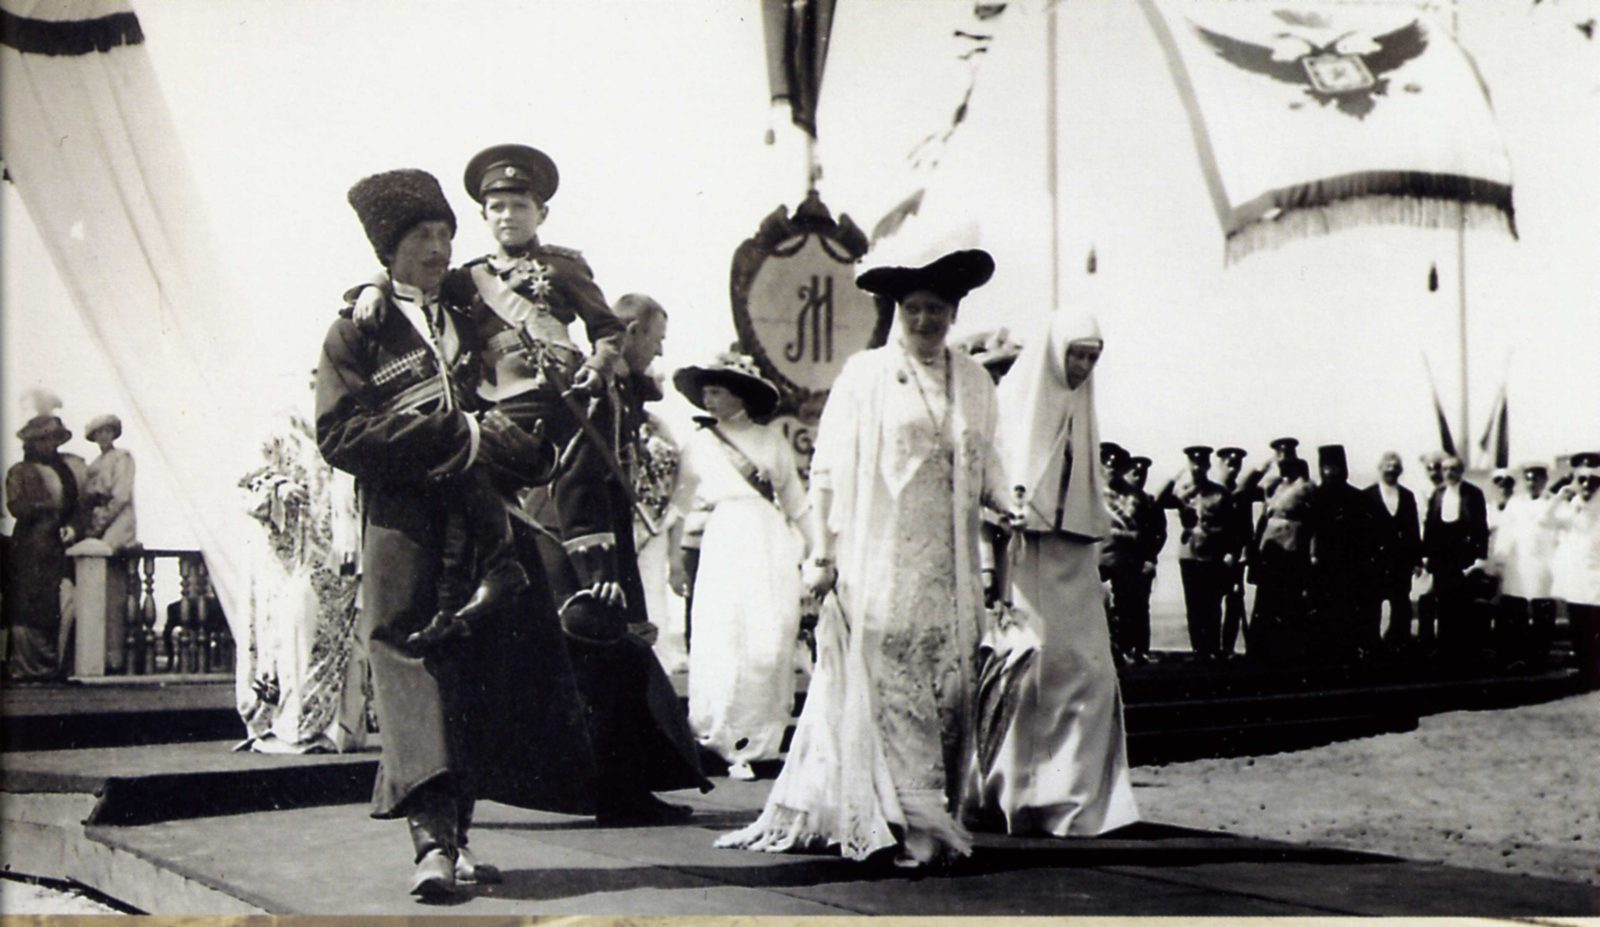 Empress Alexandra Feodorovna, Grand Duchess Elisaveta Feodorovna and Tsarevich Alexei Nikolayevich (in the hands of uncle) during the celebration of the 300th anniversary of the Romanov Imperial House. 1913 year.